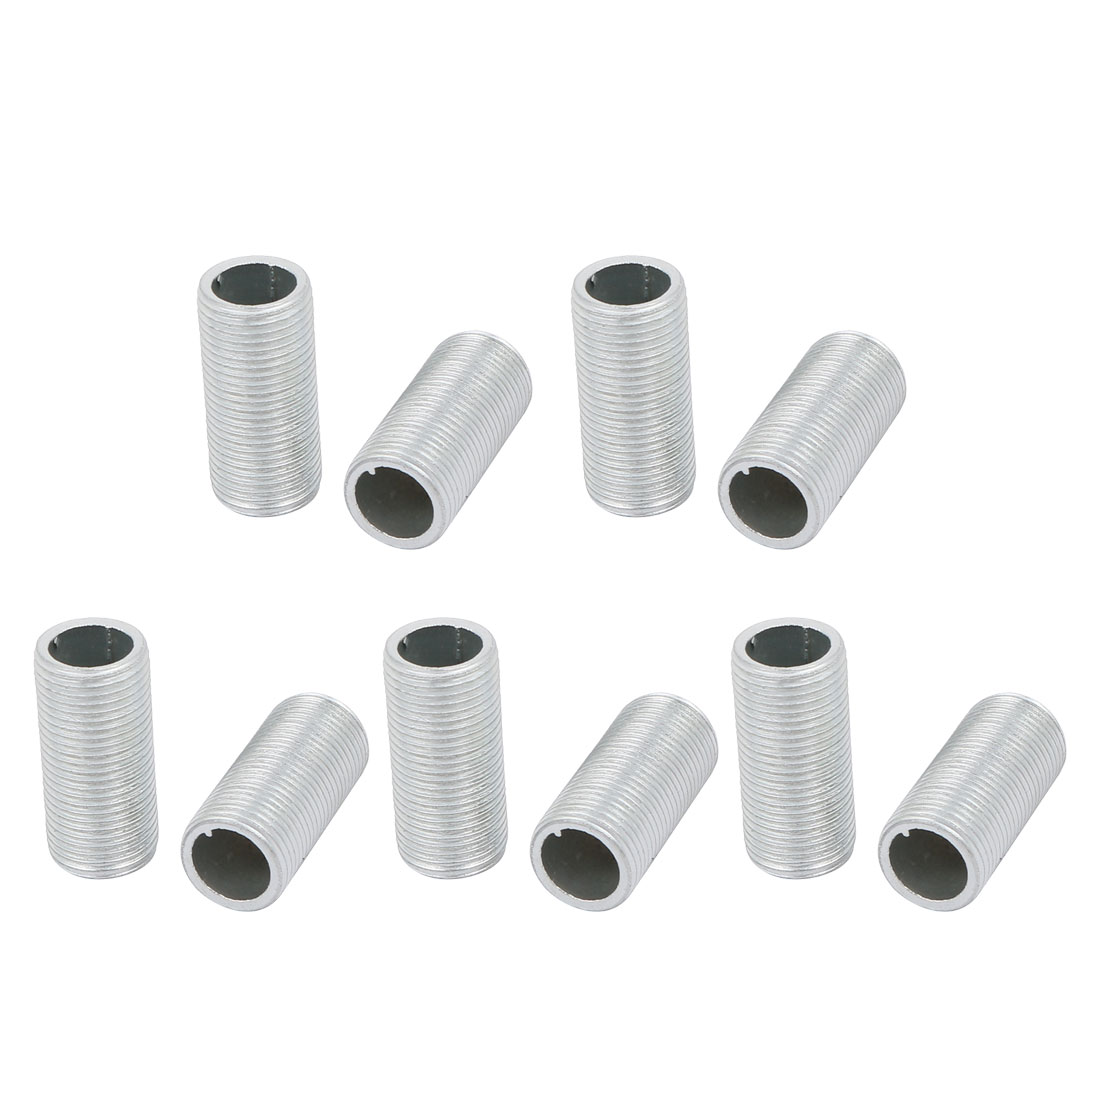 10Pcs M12 Full Threaded Lamp Nipple Pass-Through Pipe Connector 25mm Length